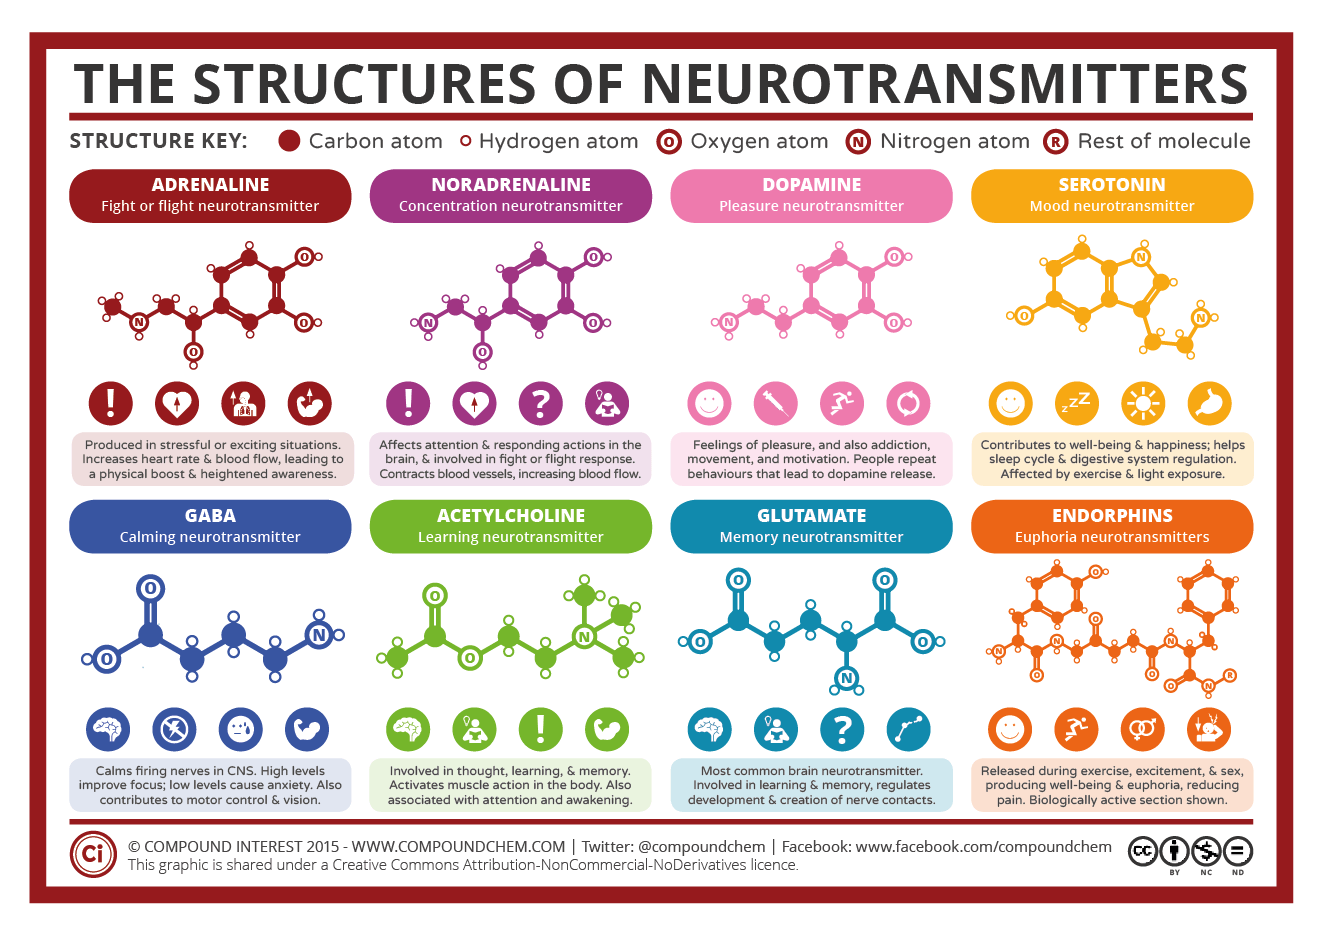 A Simple Guide to Neurotransmitters | Compound Interest